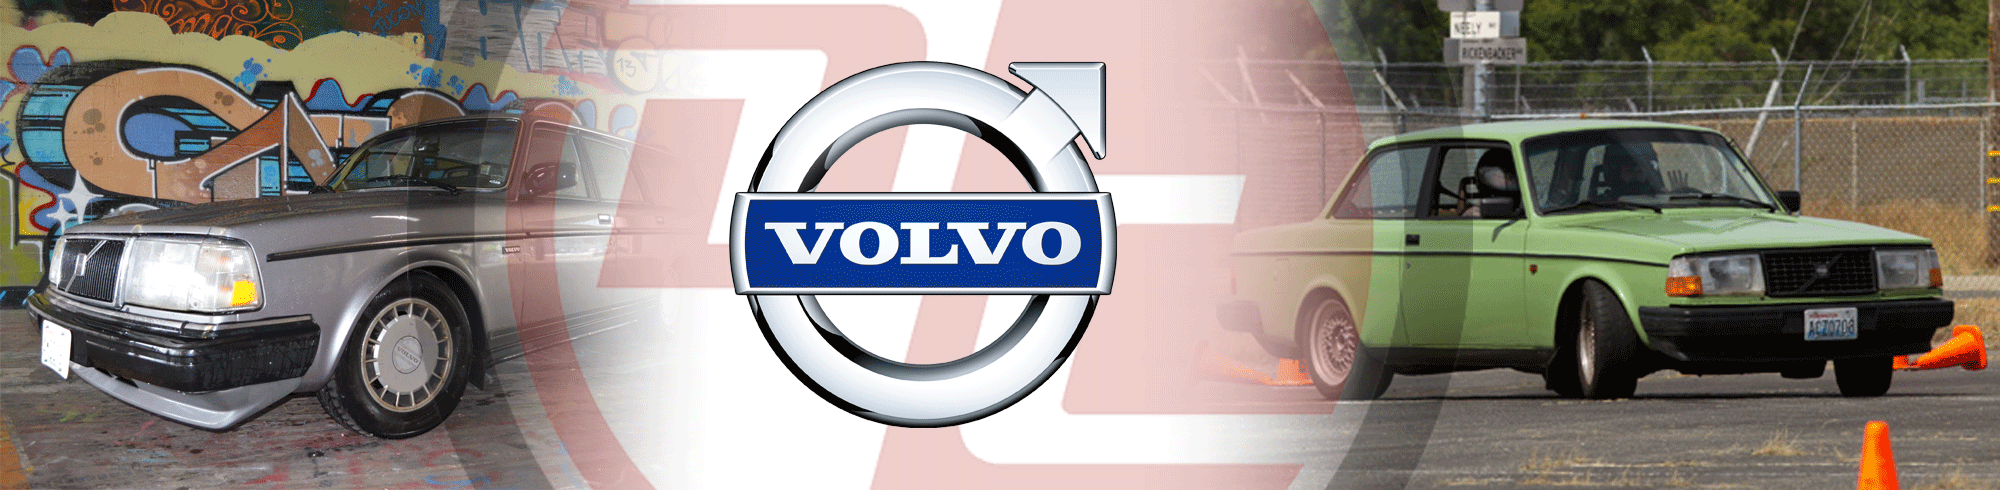 Volvo products